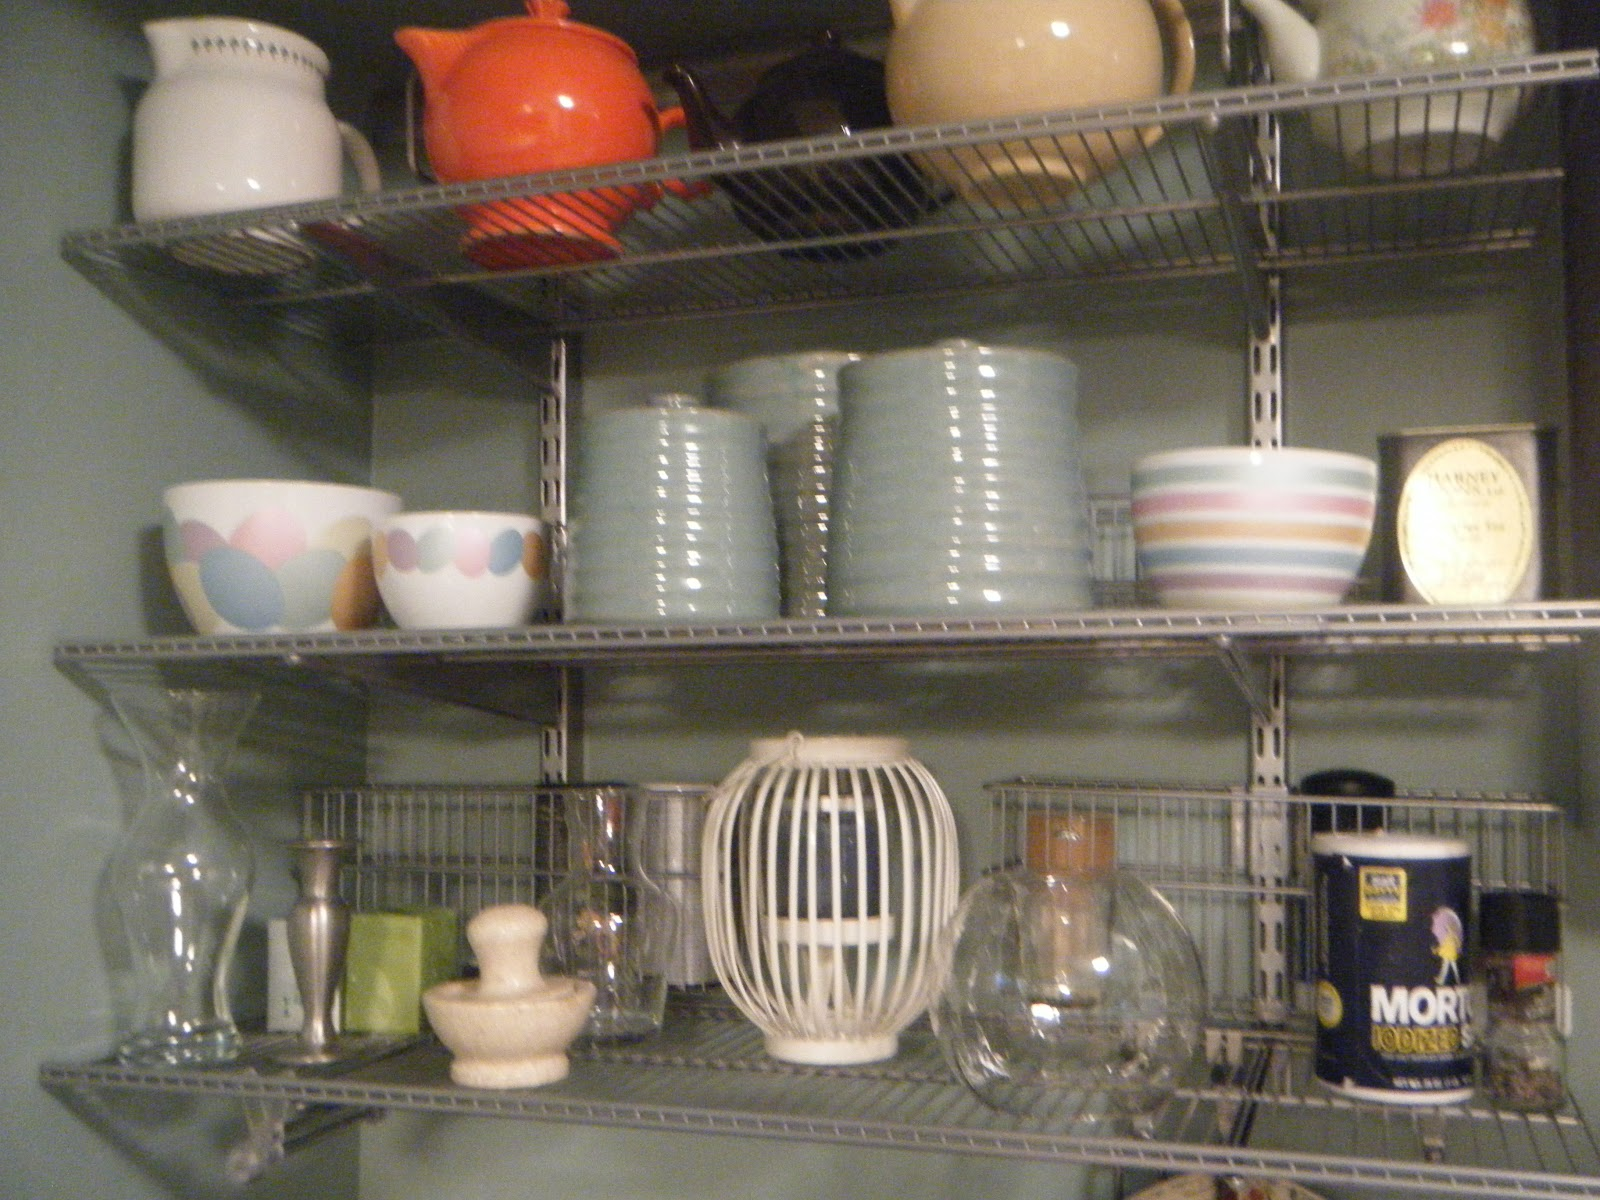 Merveilleux New Elfa Shelving That Replaced Damaged Cabinets